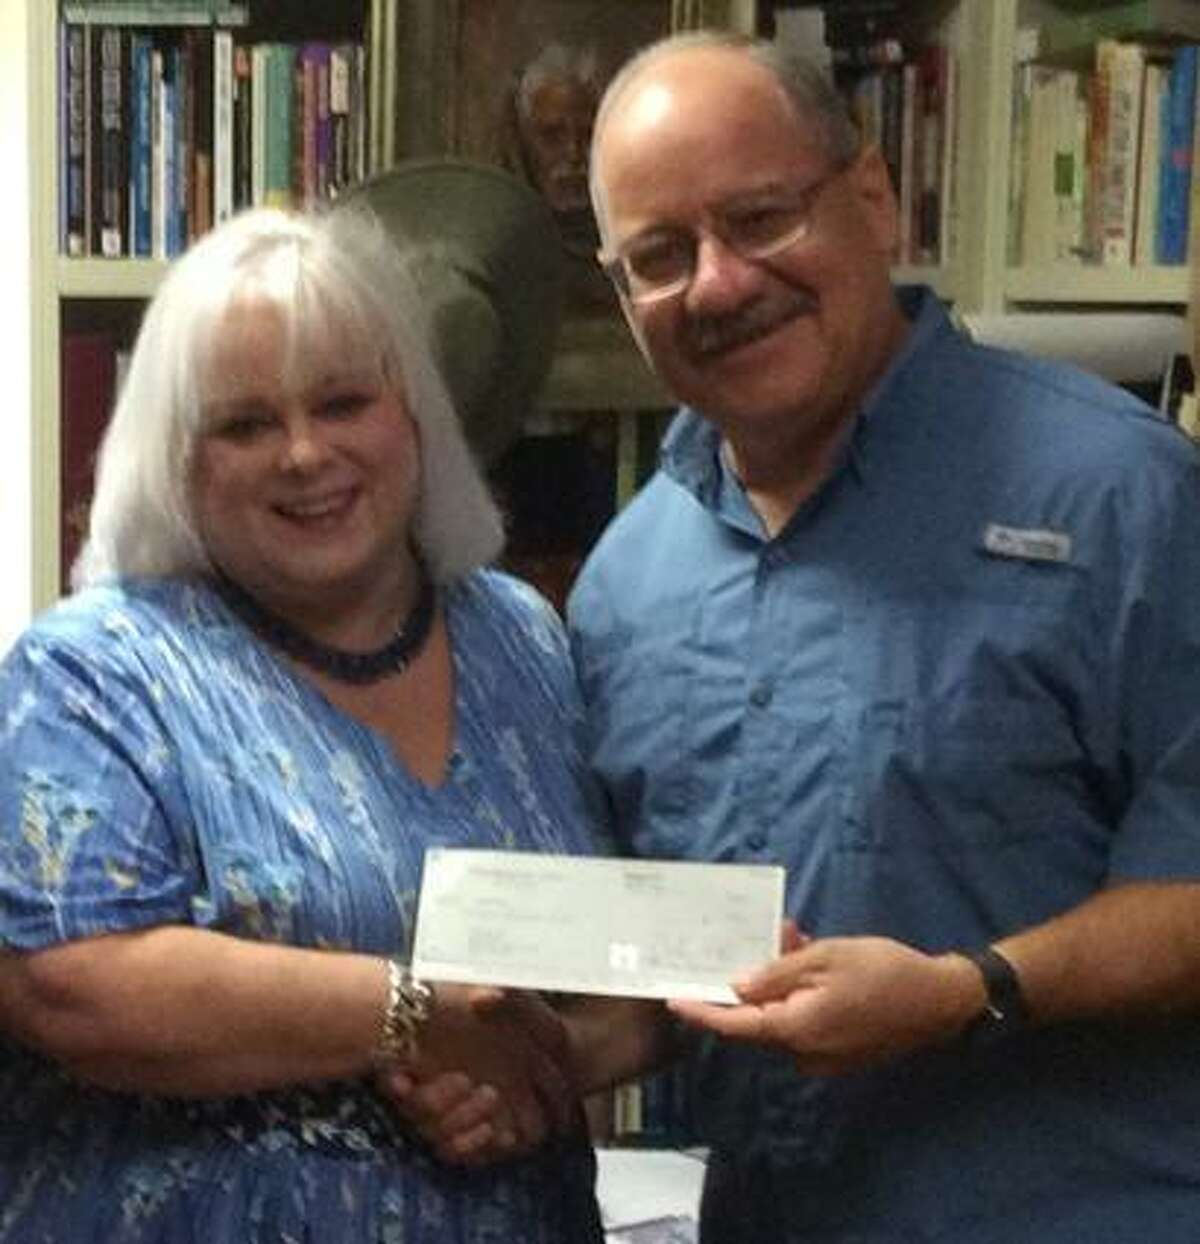 Kingsland Baptist Church is among the sponsors of Operation Back 2 School this year. Rhonda Player, Compassion Katy director of marketing, received a sponsorship check from Missions Pastor Omar Garcia.